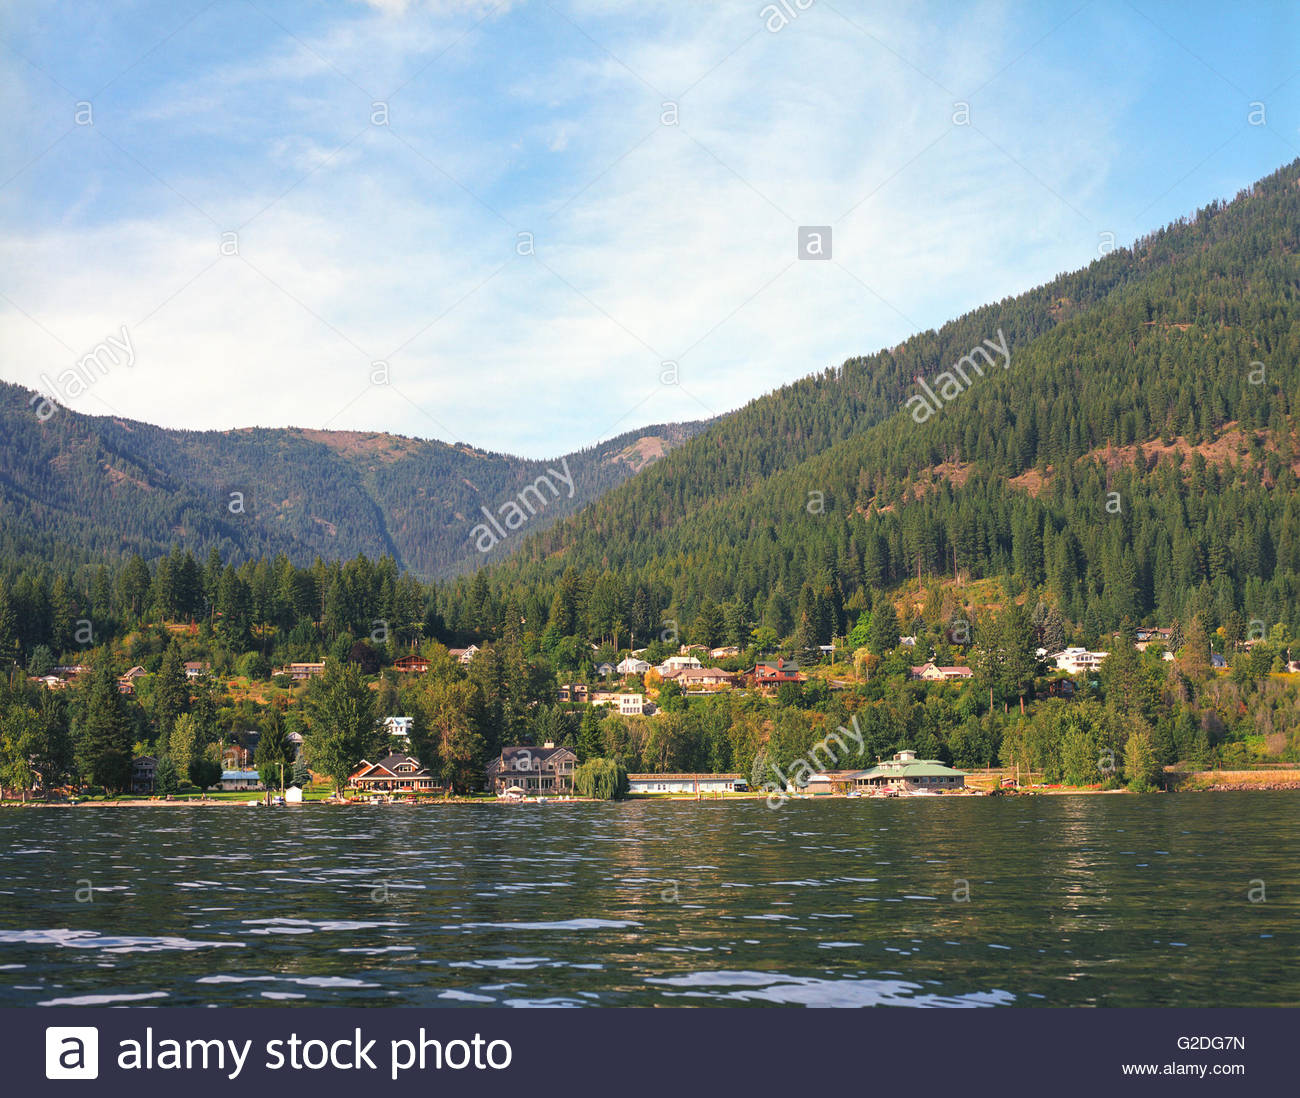 Lakeside Town and Mountains - Stock Image